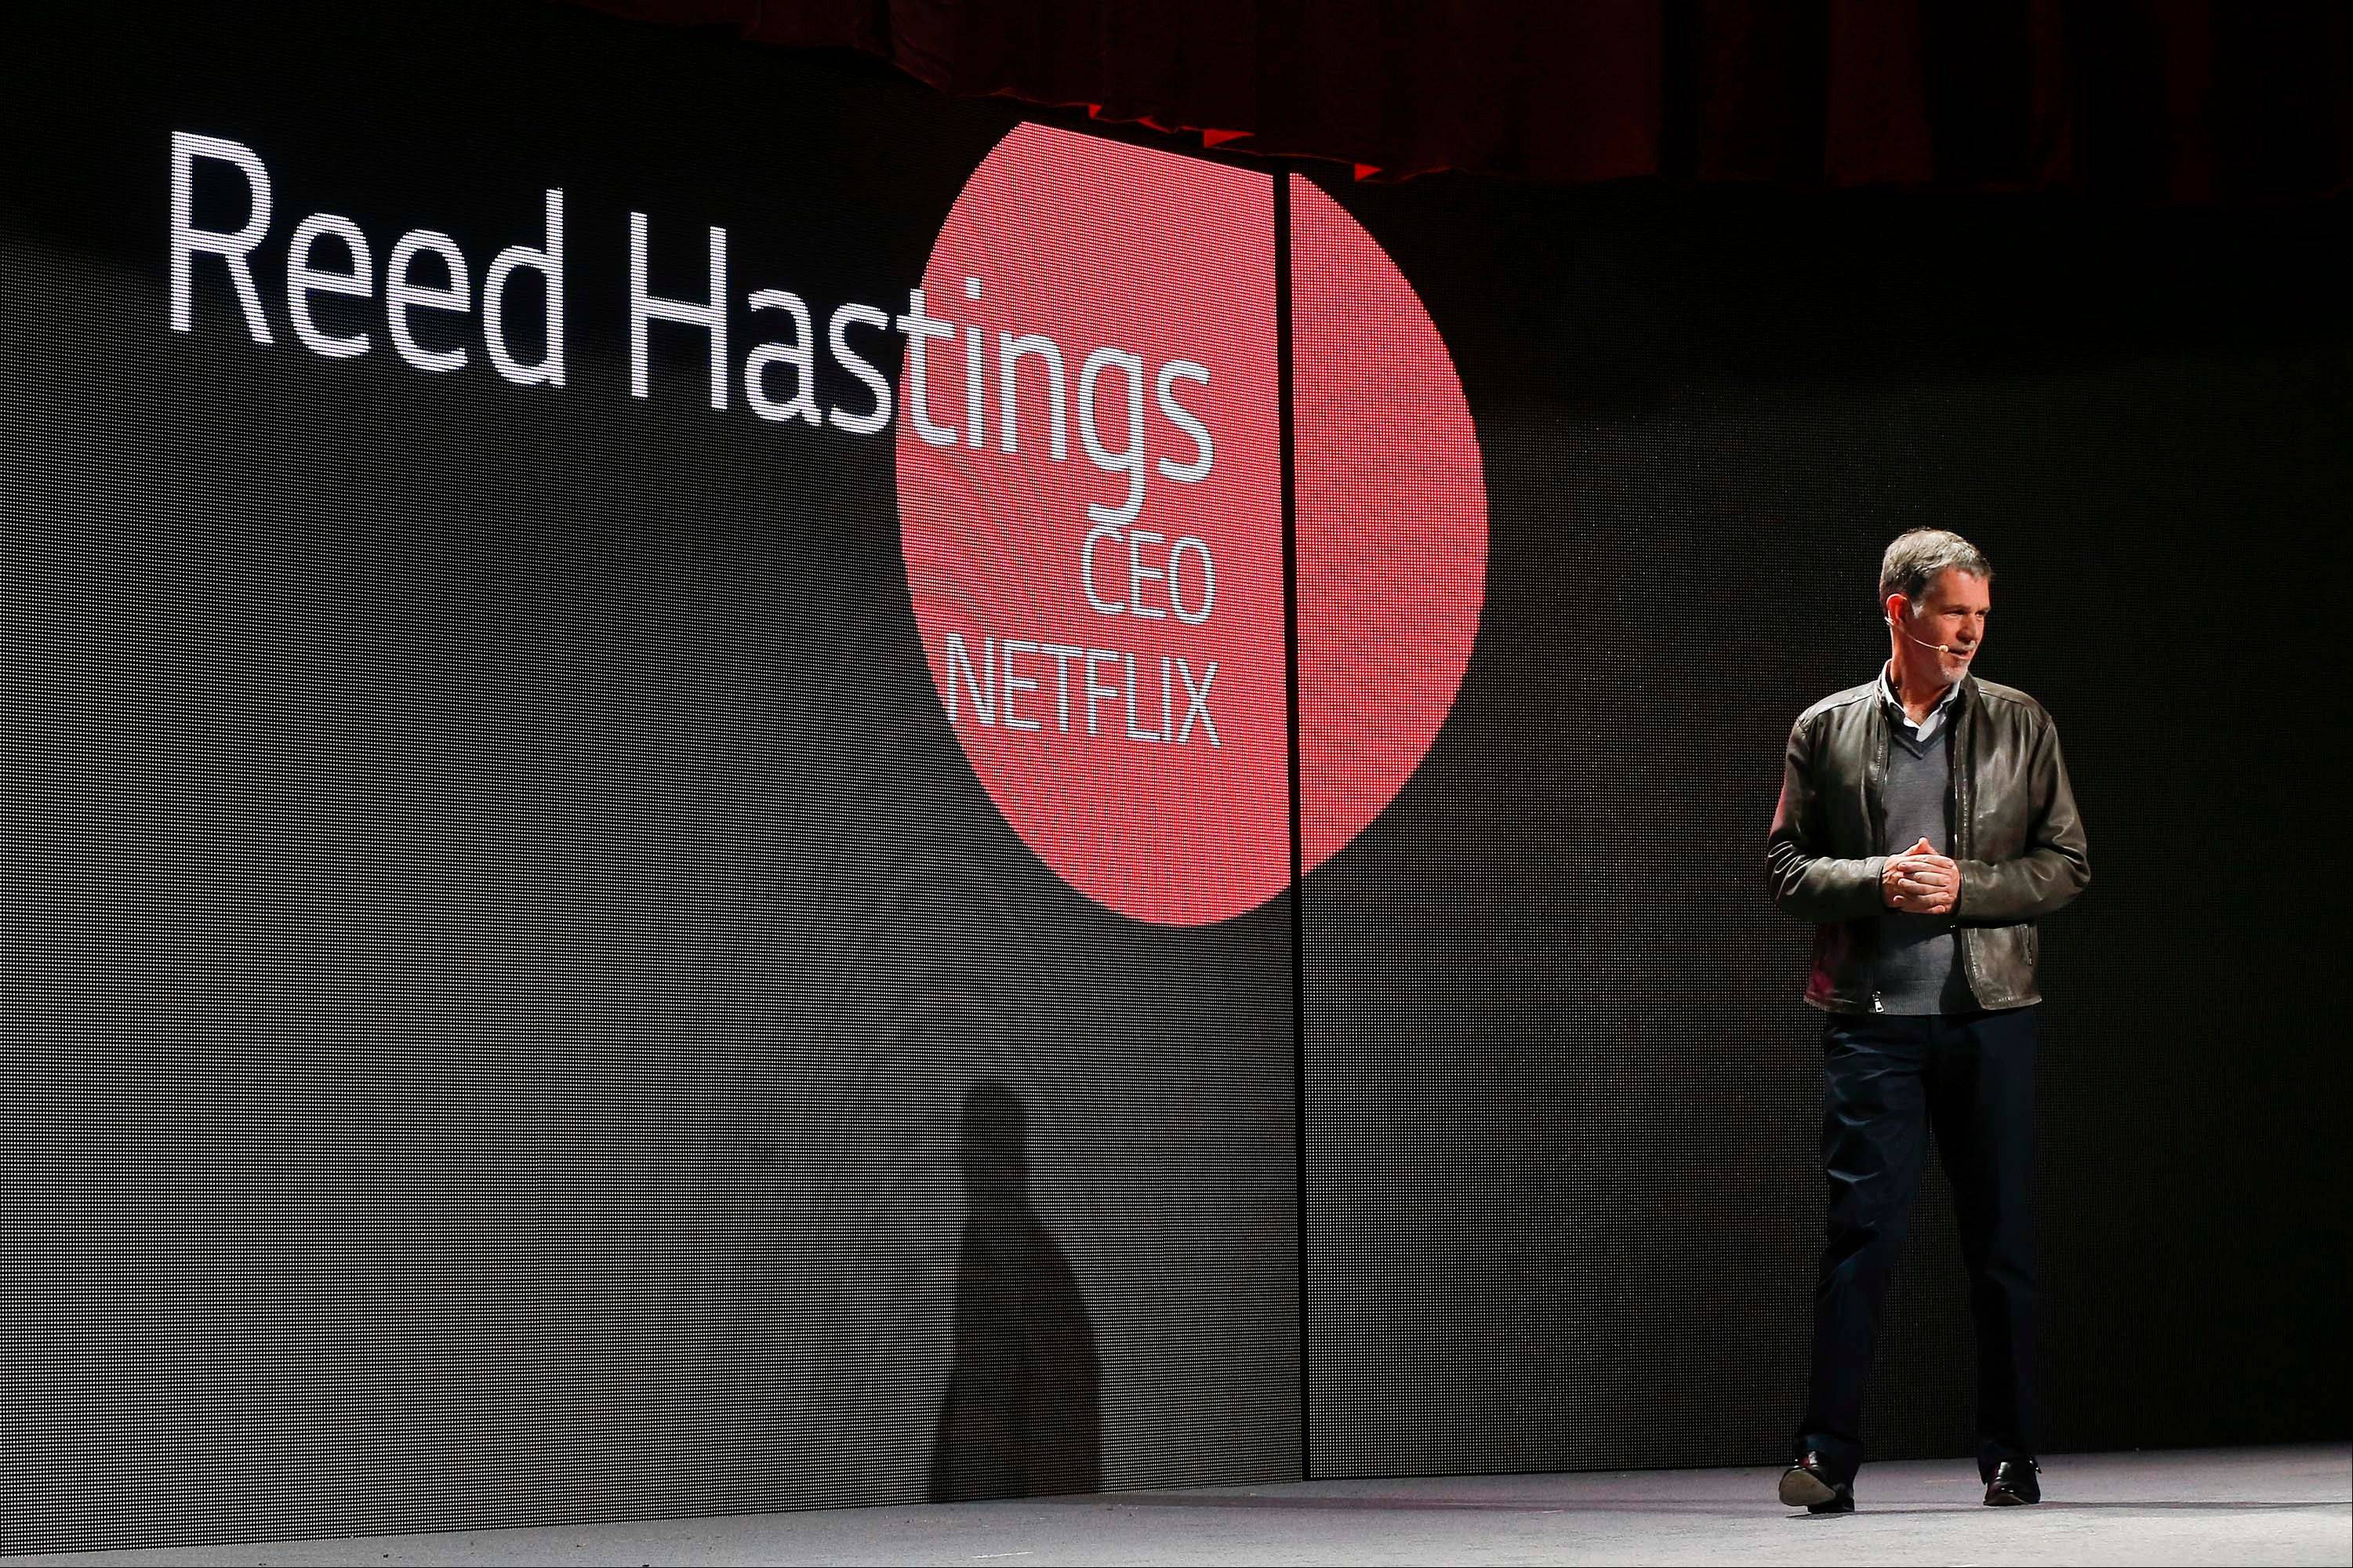 Netflix CEO Reed Hastings talks about his company's collaboration with LG televisions during the 2014 Consumer Electronics Show in Las Vegas. LG television owners can access Netflix movies directly through a Netflix app on their screen.